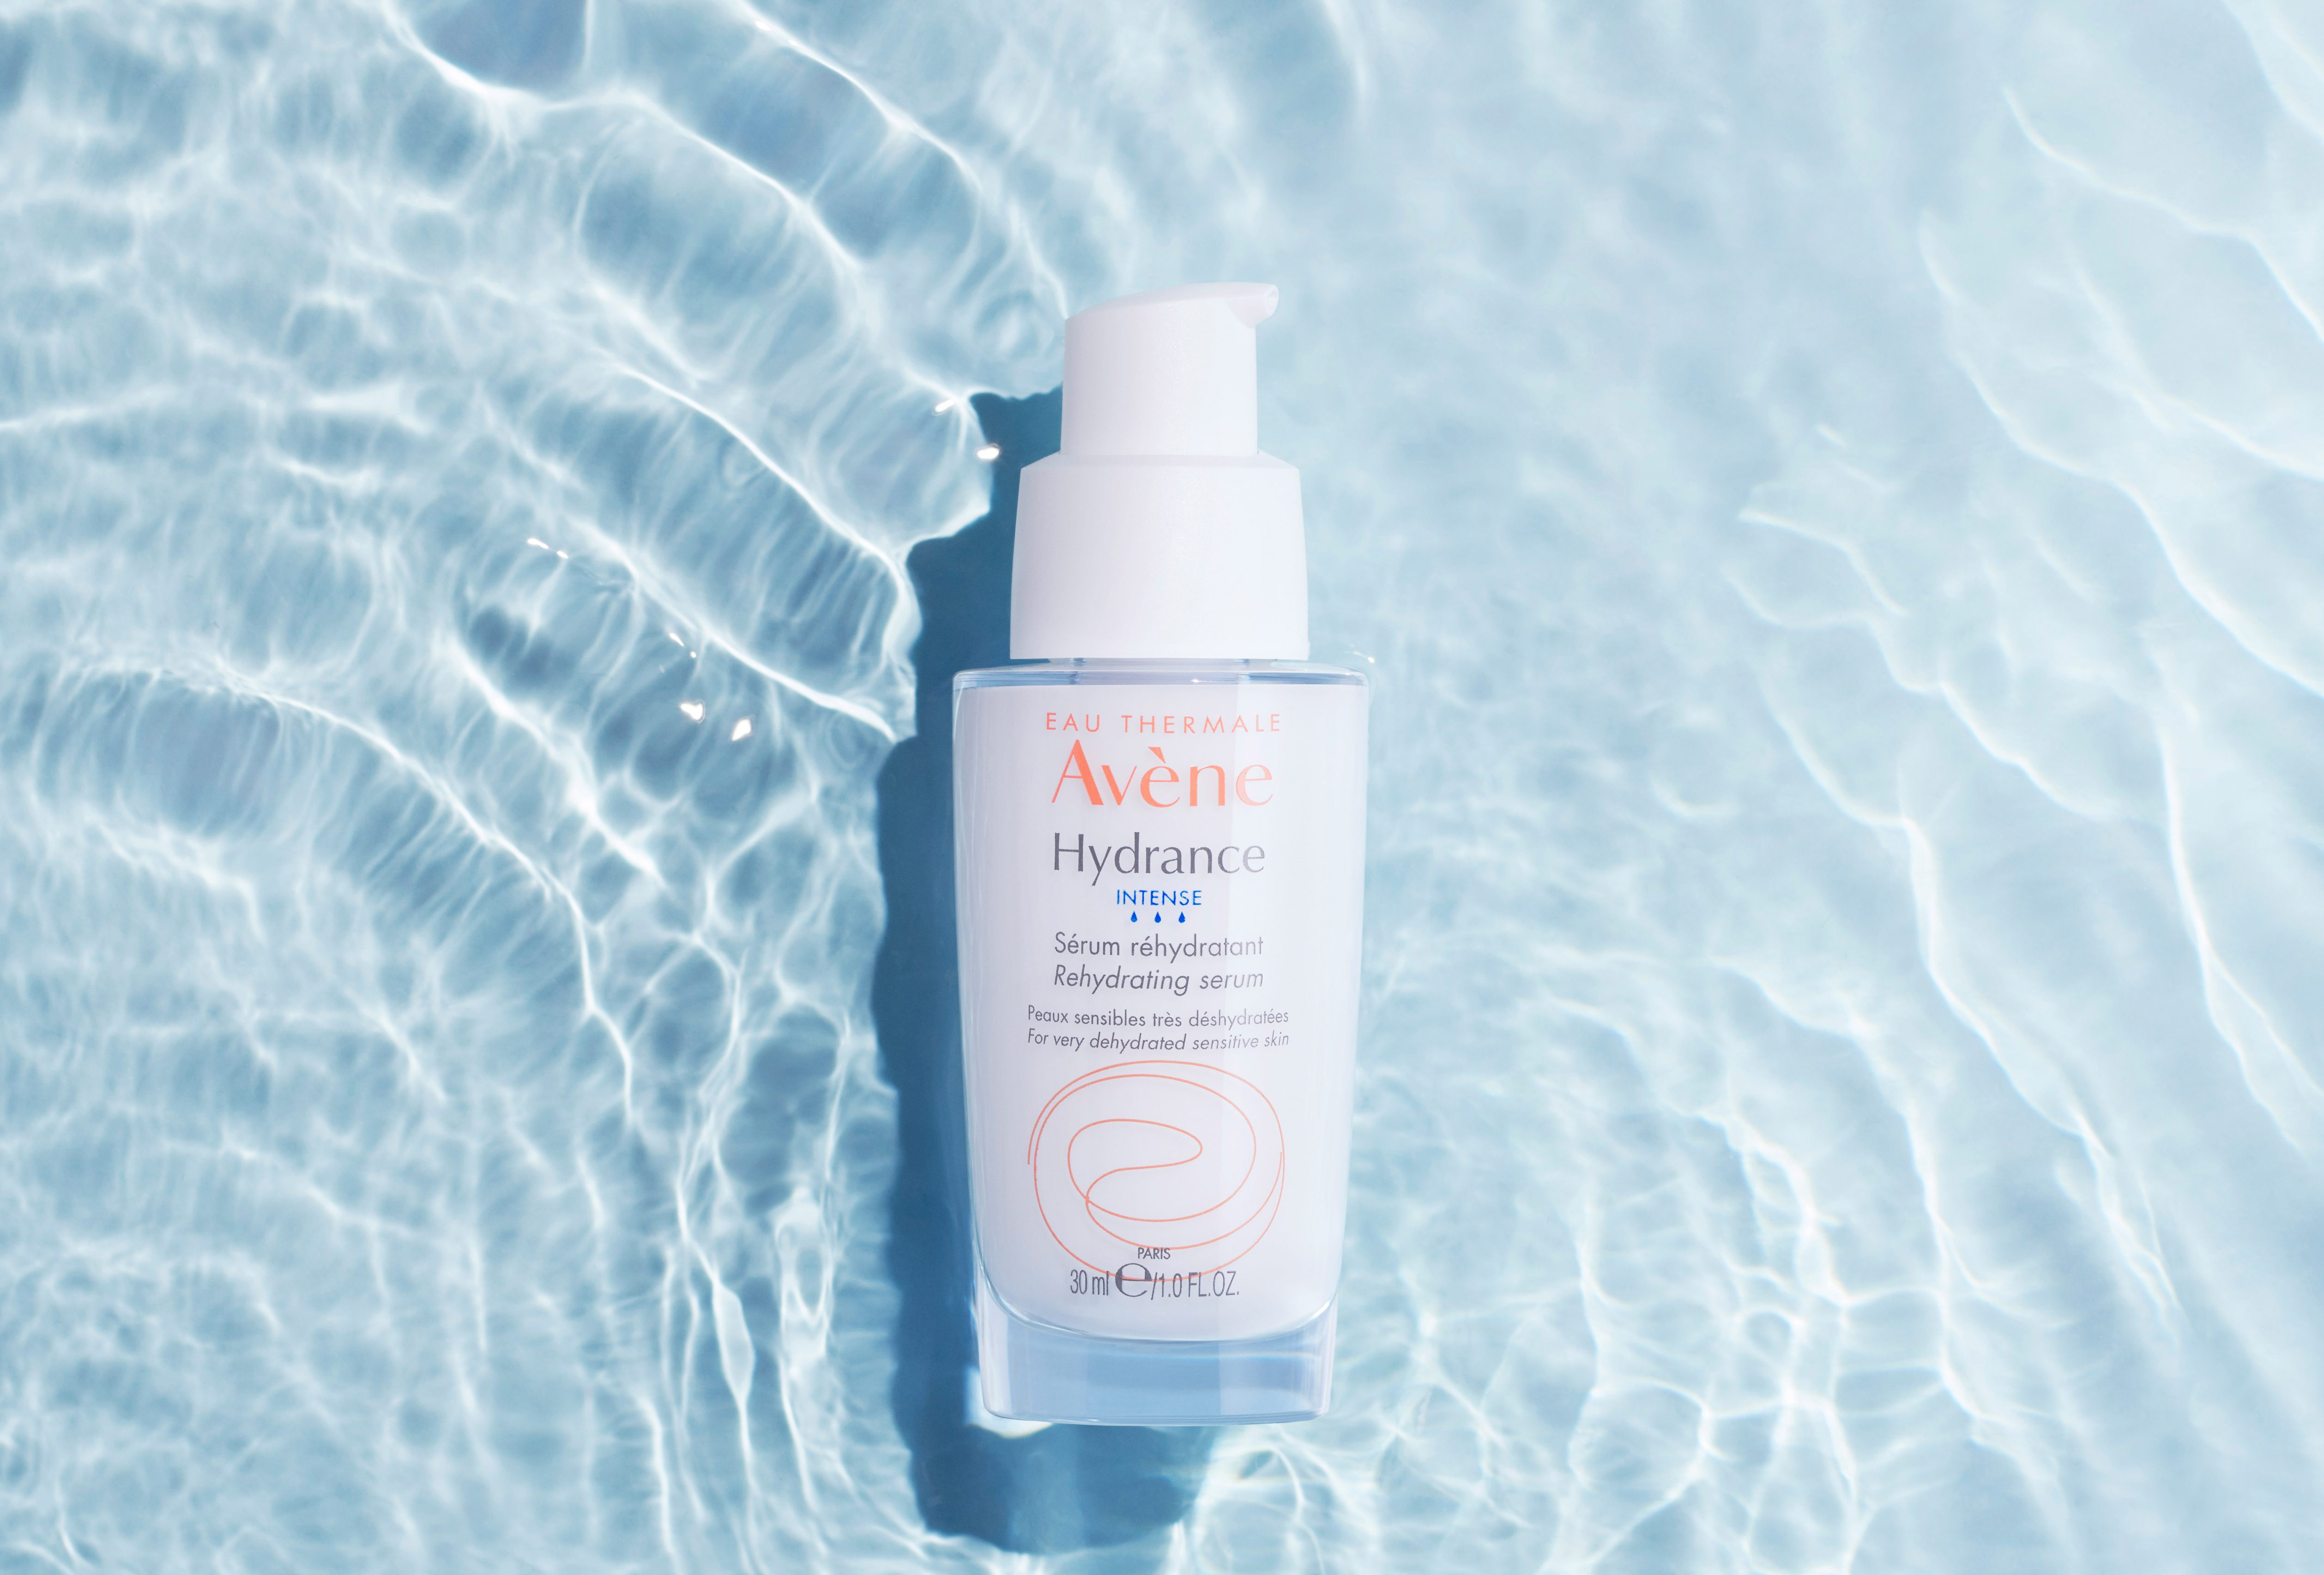 Eau Thermale Avene Hydrance Facebook Instagram Post Quarter1 2019 Intense Rehydrating Serum High Resolution 46266